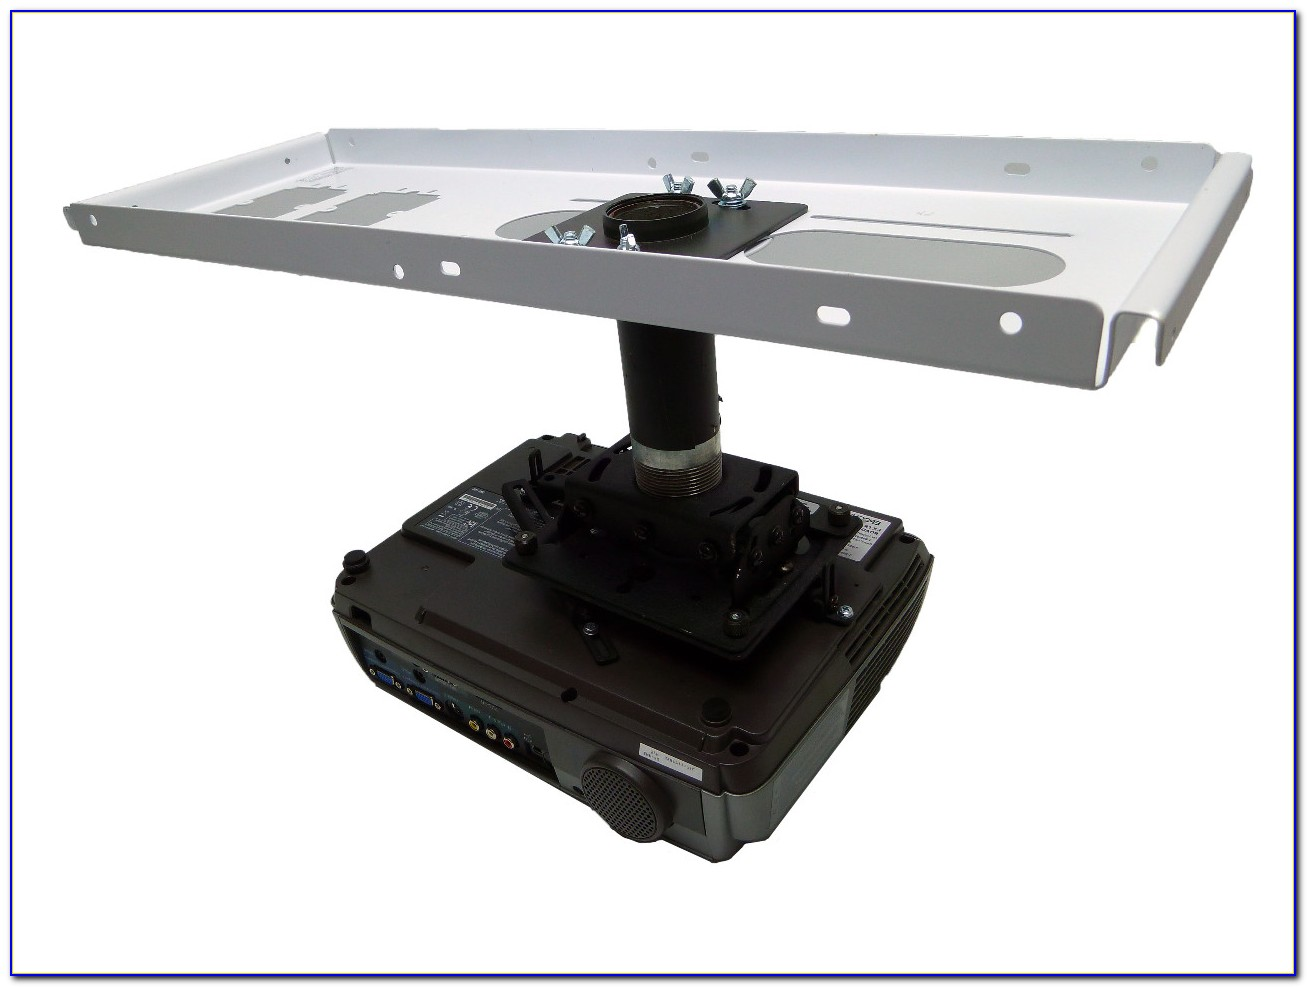 Epson Projector Ceiling Mount Bracket